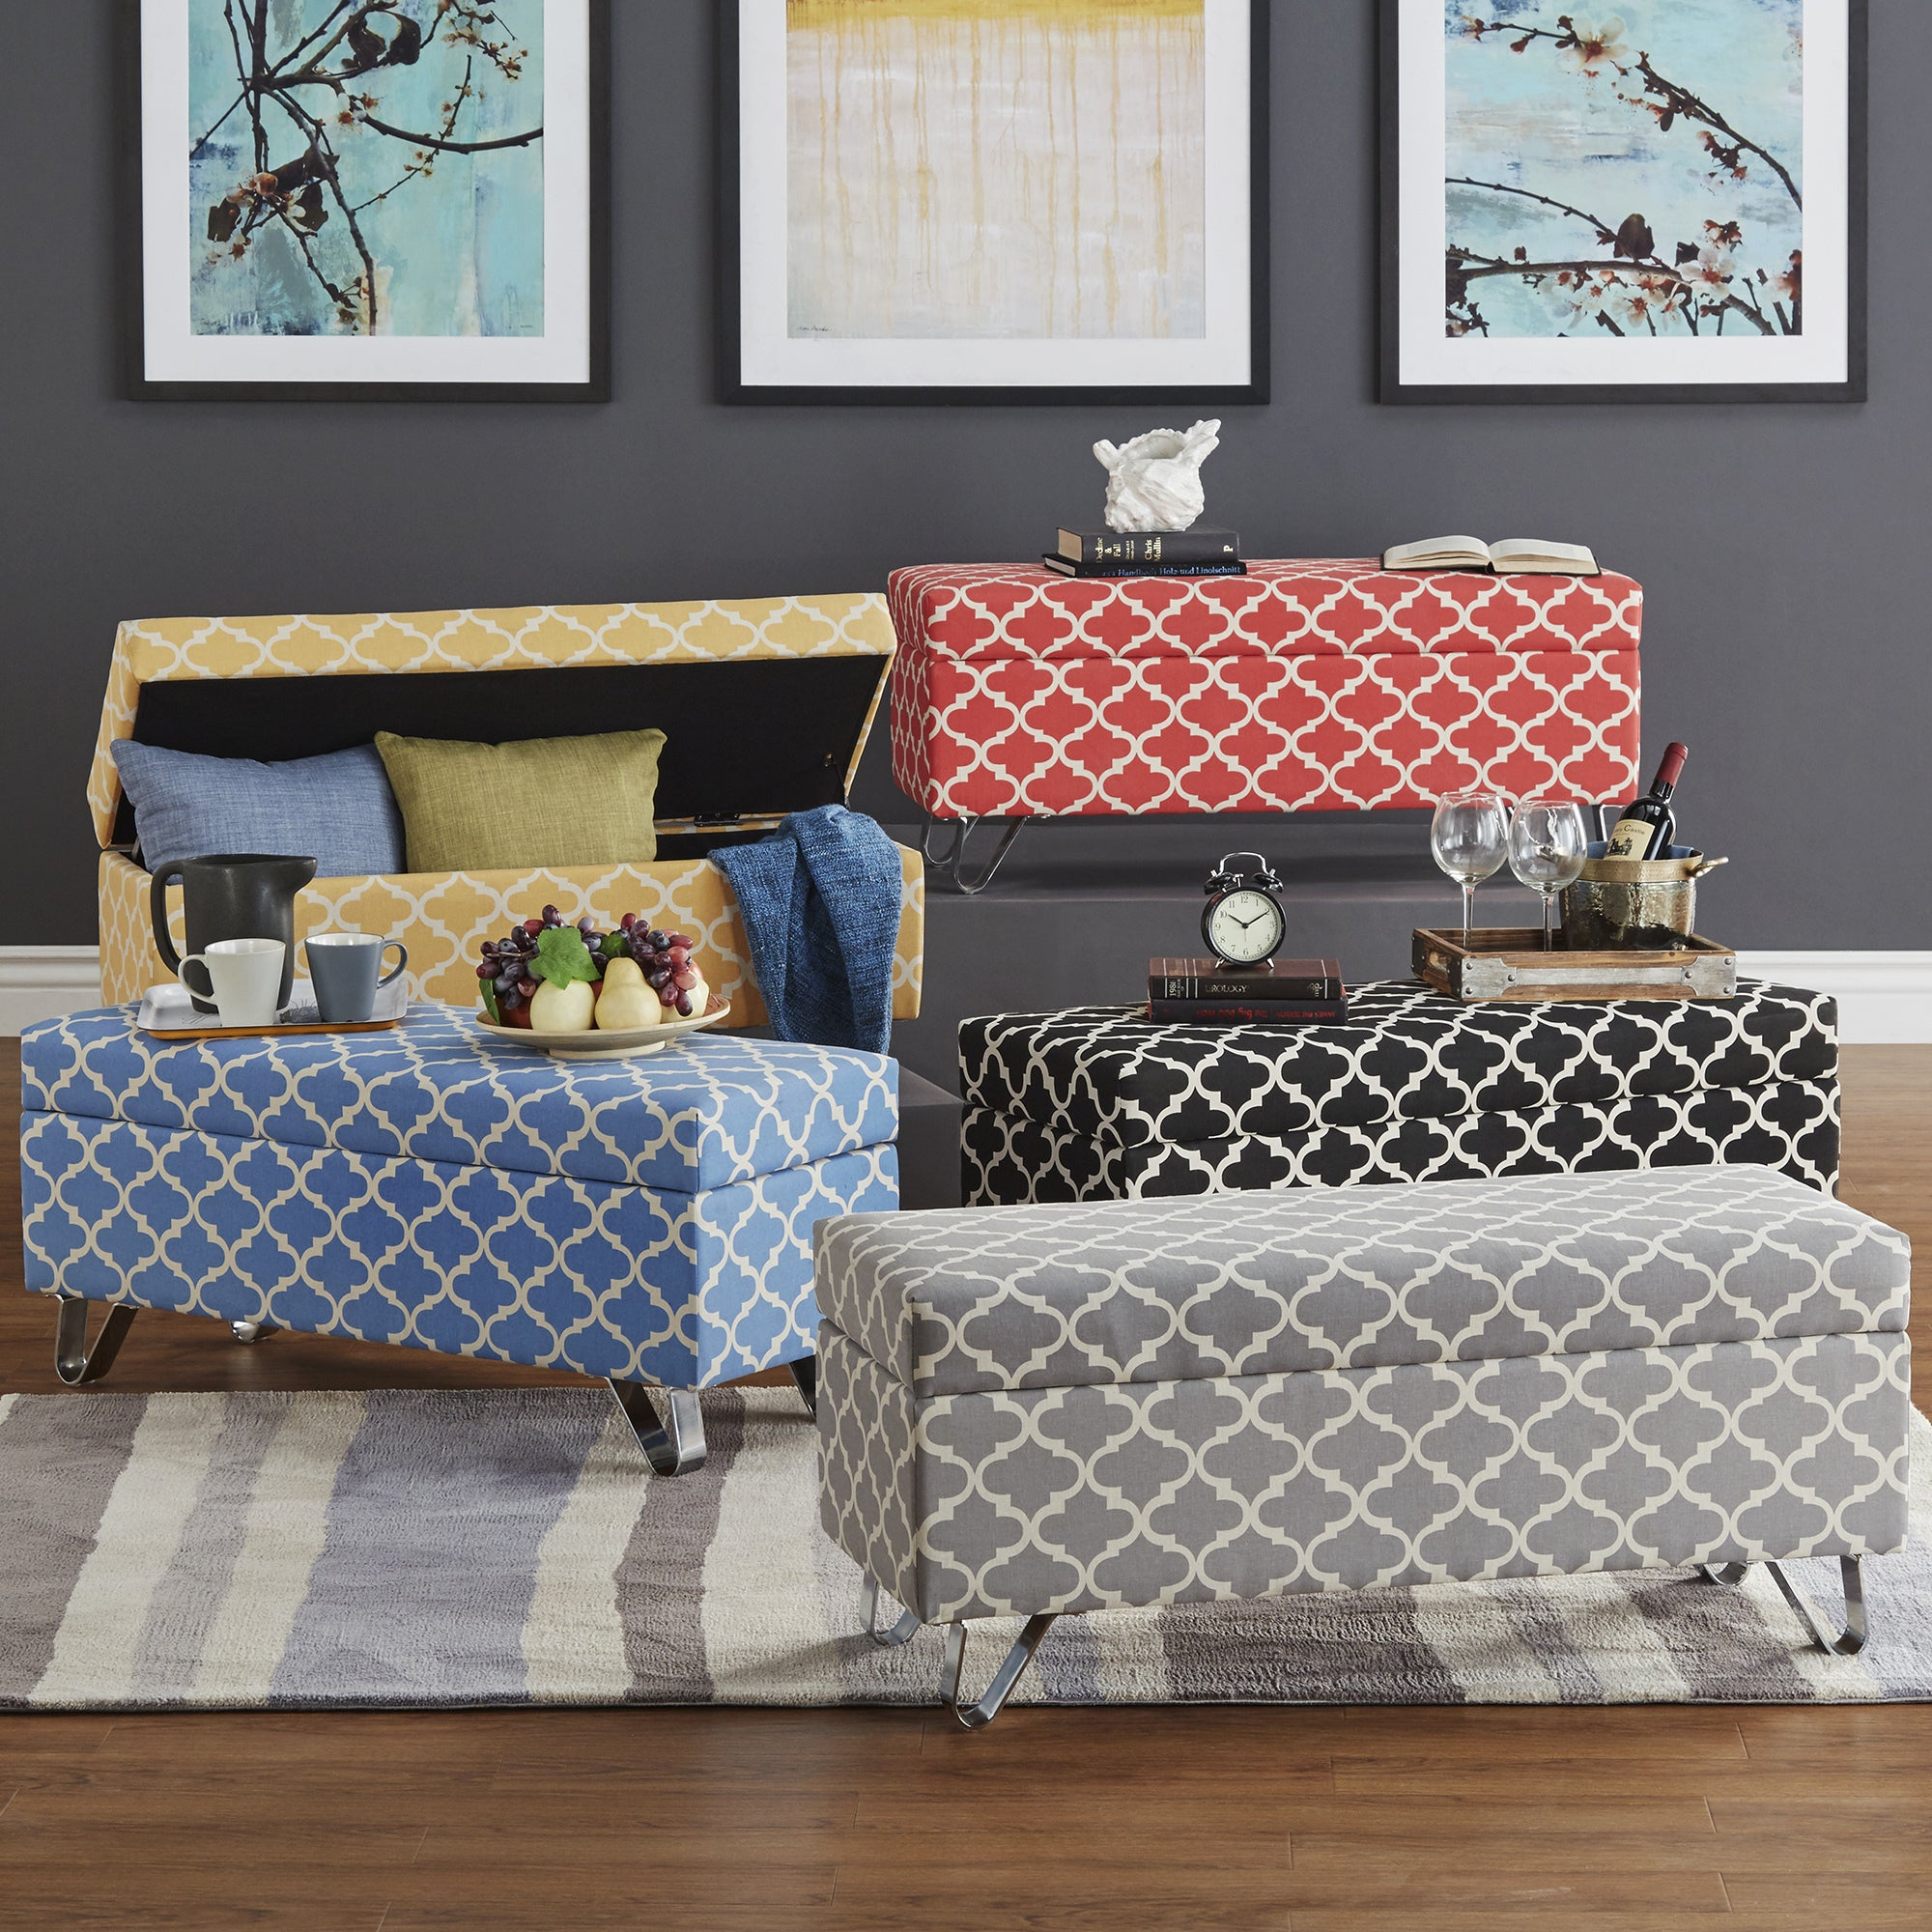 Tangier Moroccan Print Fabric Lift Top Storage Bench with Metal Legs by  iNSPIRE Q Bold - Free Shipping Today - Overstock.com - 20456157